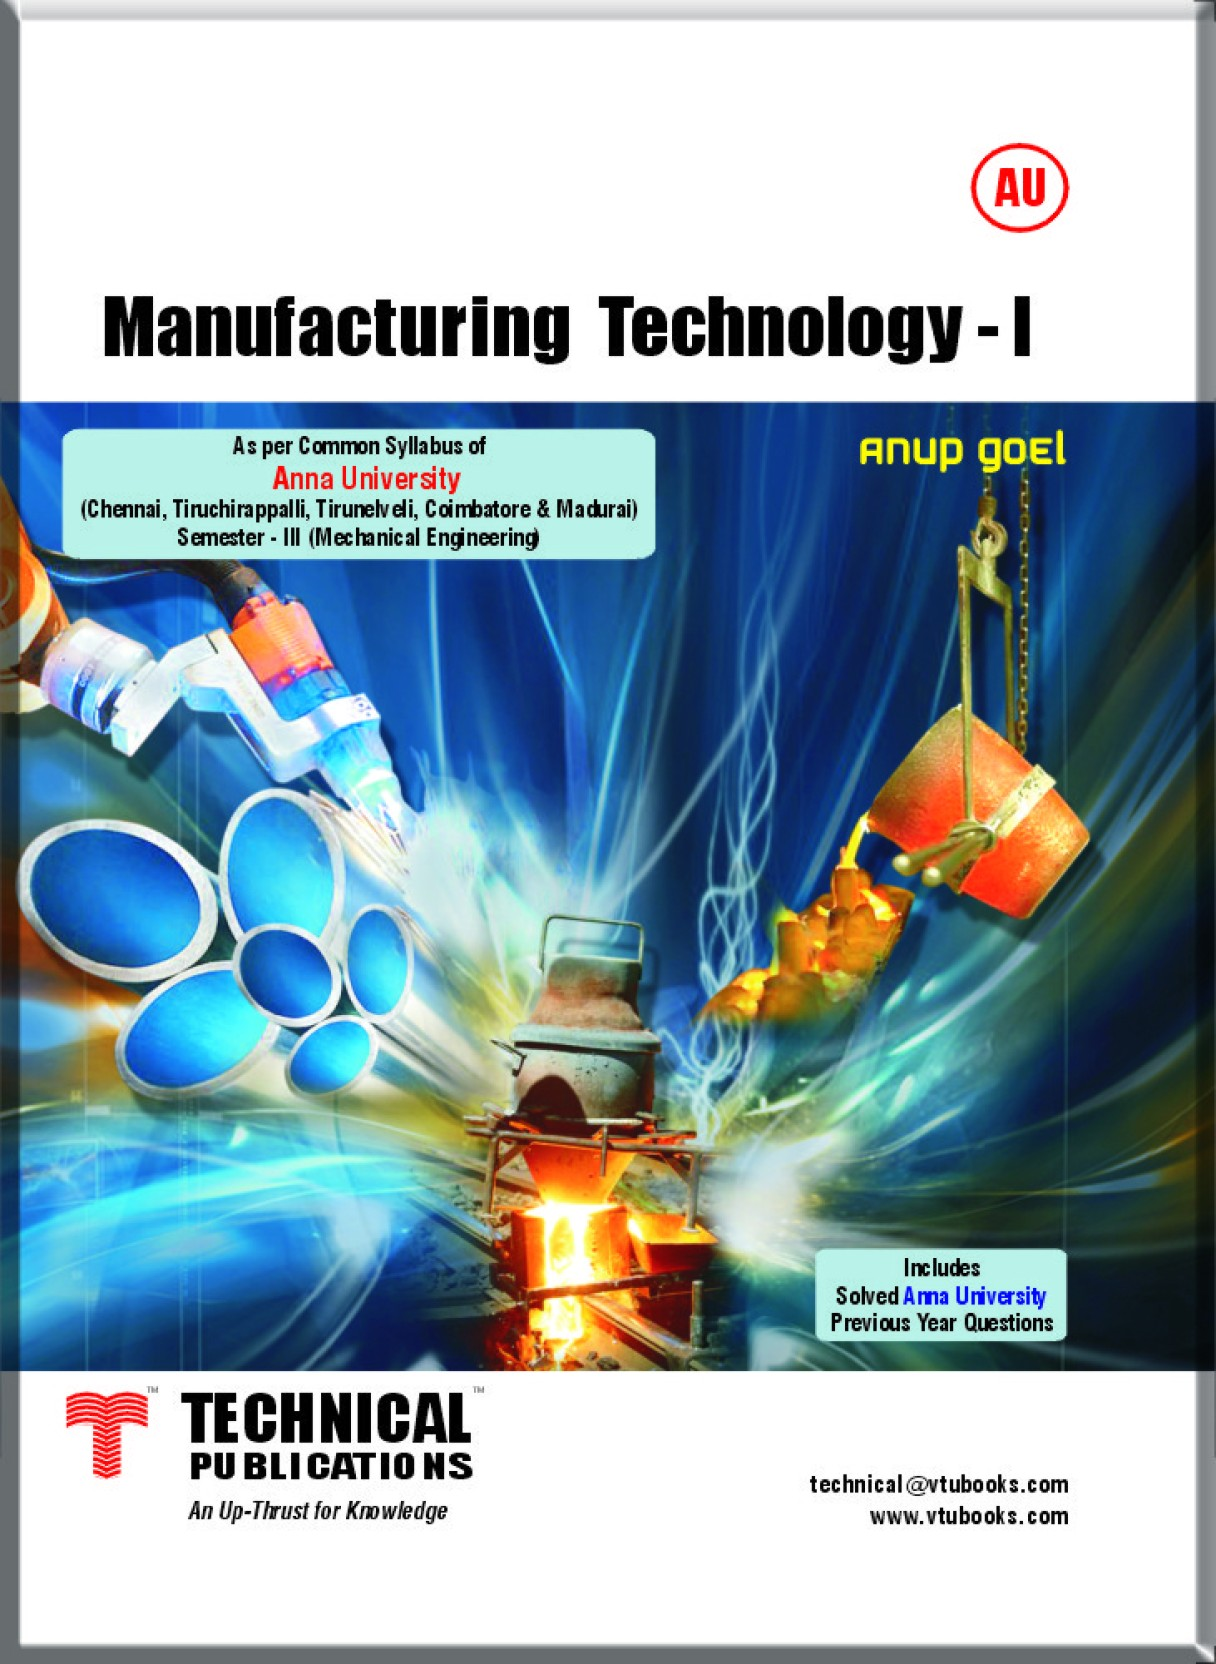 Manufacturing Technology - I for Anna University: Buy Manufacturing